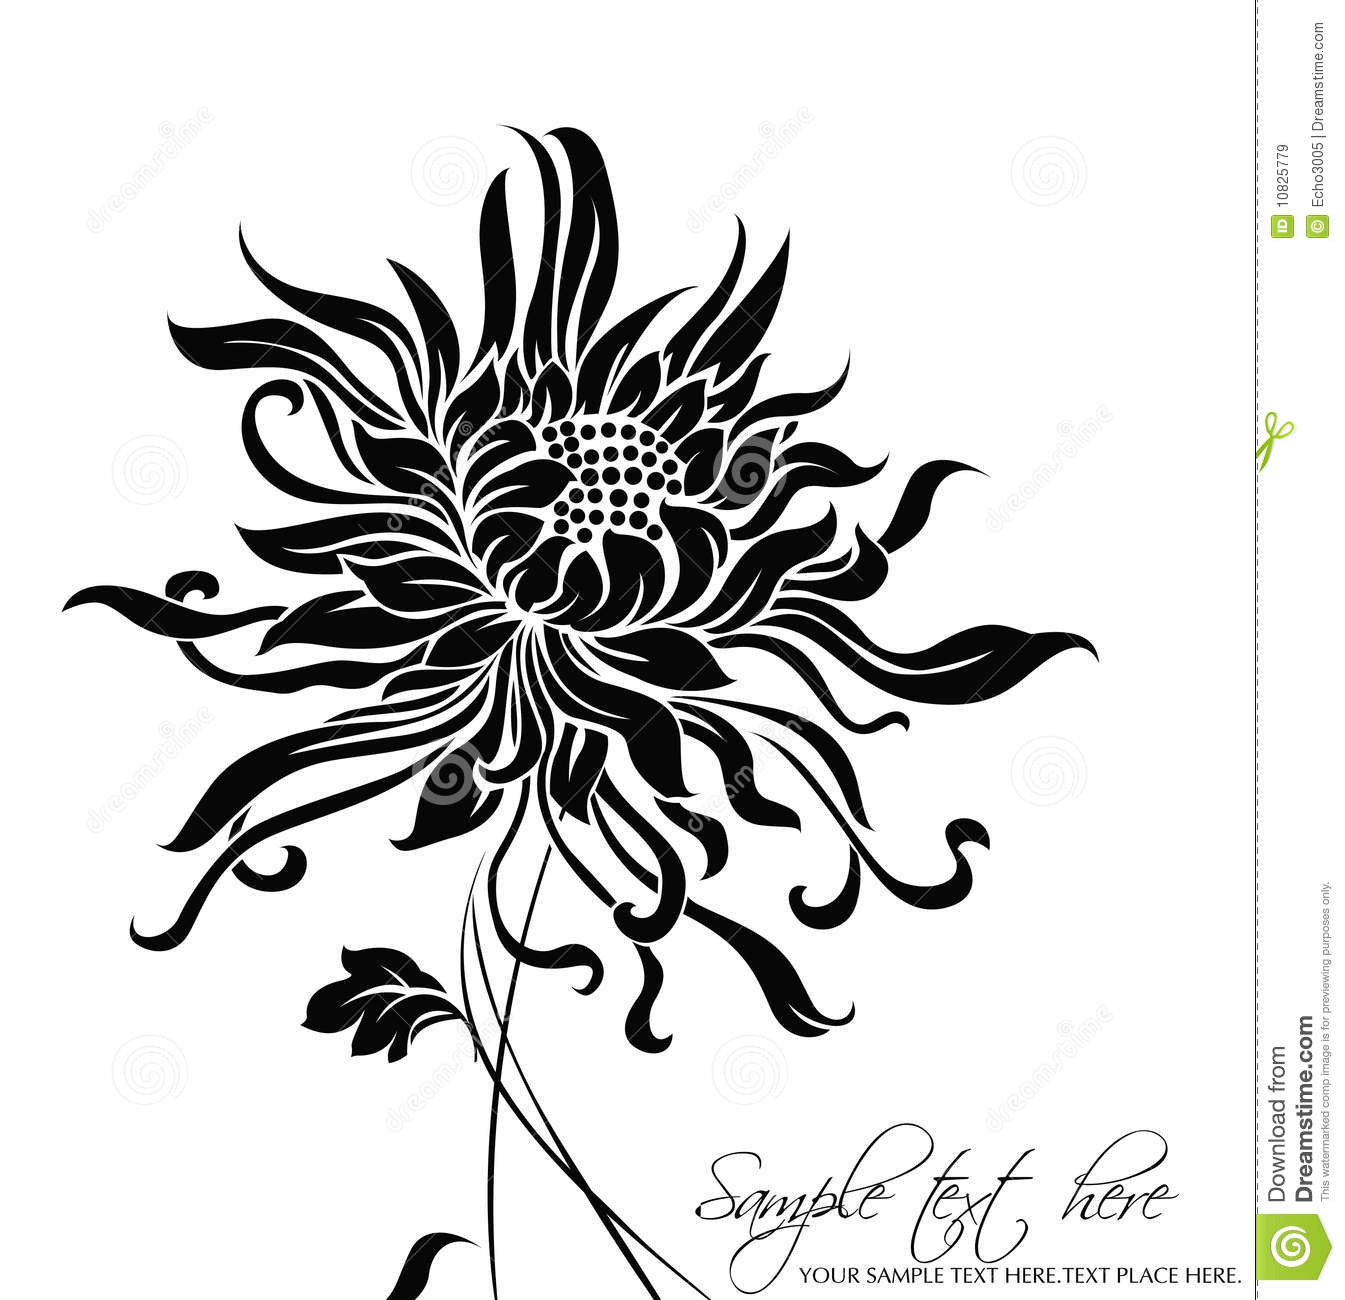 Vector Flower Background Royalty Free Stock Images - Image: 10825779